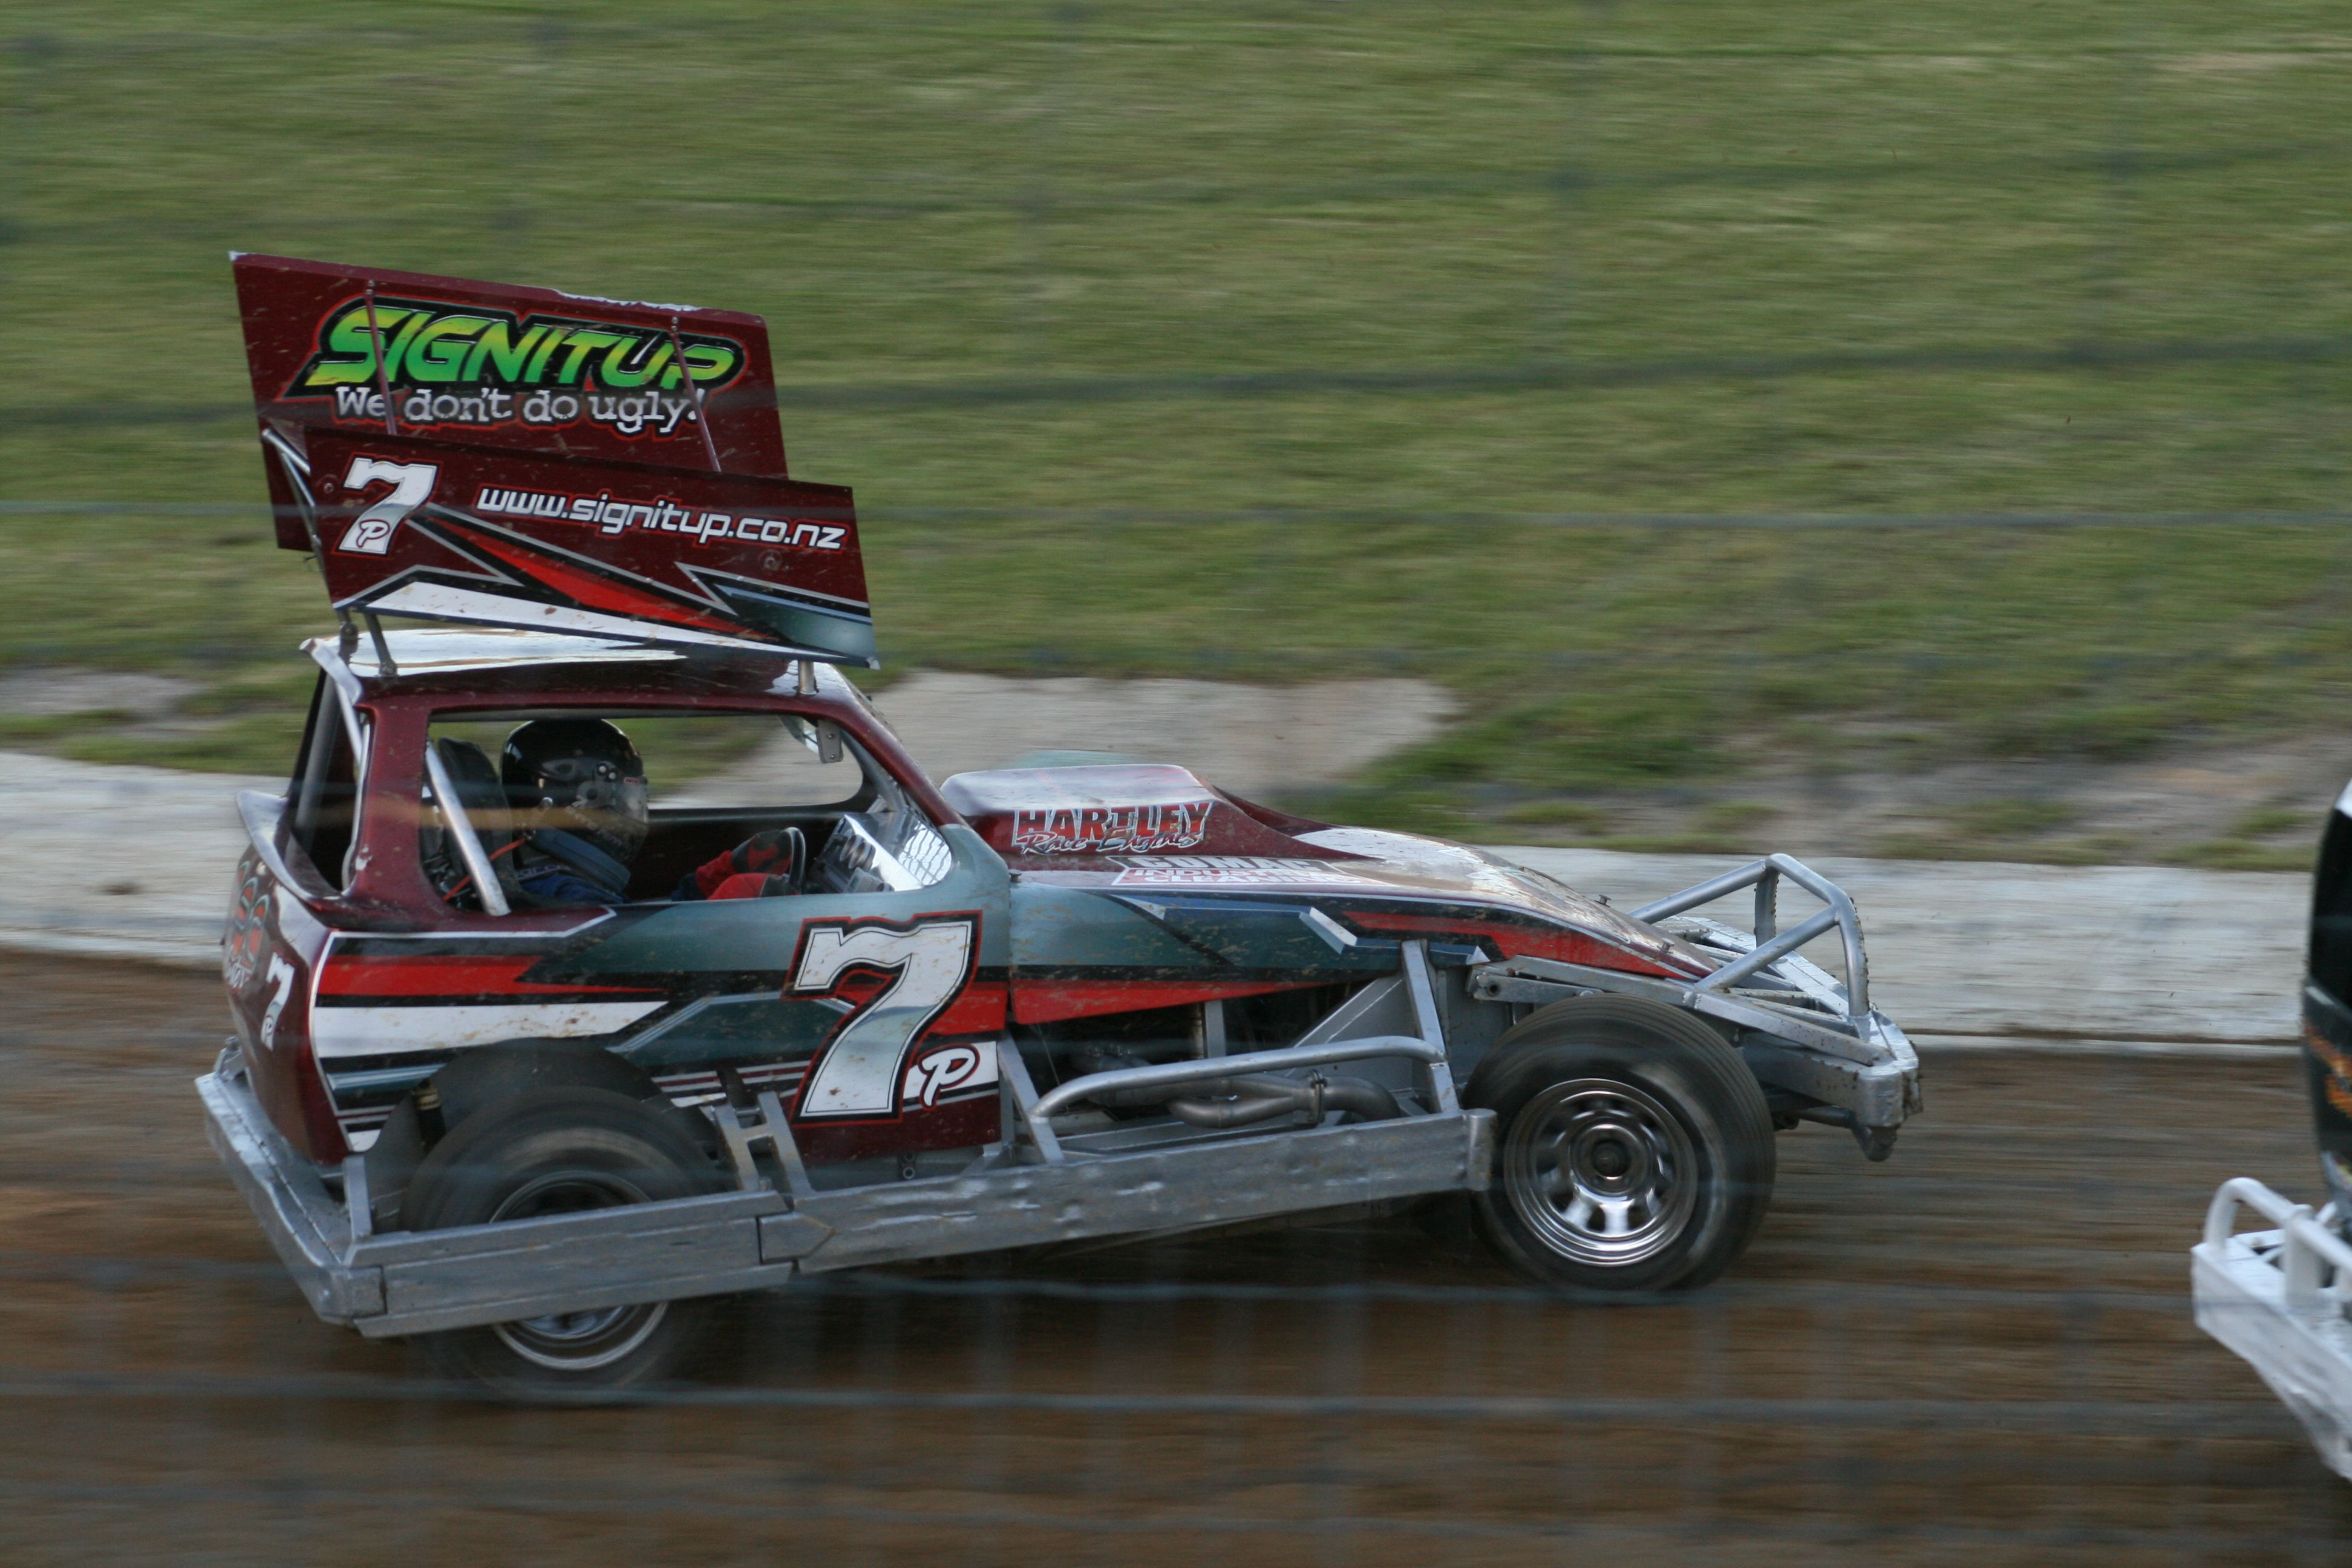 Shane Penn Racing At The2011 2012 New Zealand Superstock Champs At Huntly Speedway He Got Third At This Meeting Making Him 3nz Racing Dirt Track Cars Stock Car